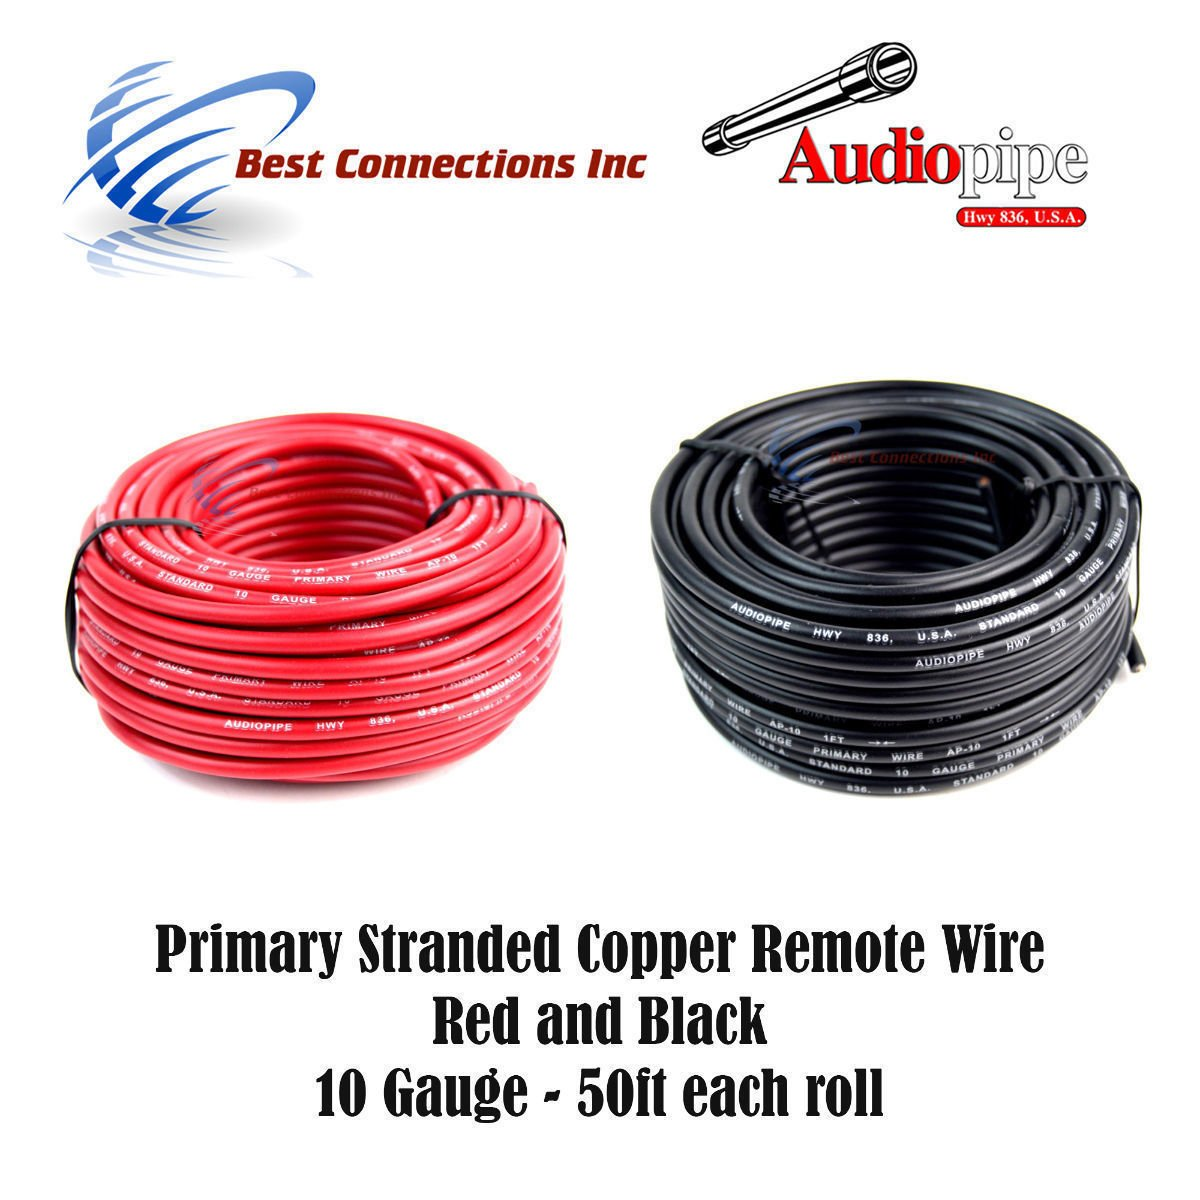 10 Gauge Wire Red Black Power Ground 50 Ft Each Supply Positivenegativeground From A Single Primary Stranded Copper Clad Everything Else